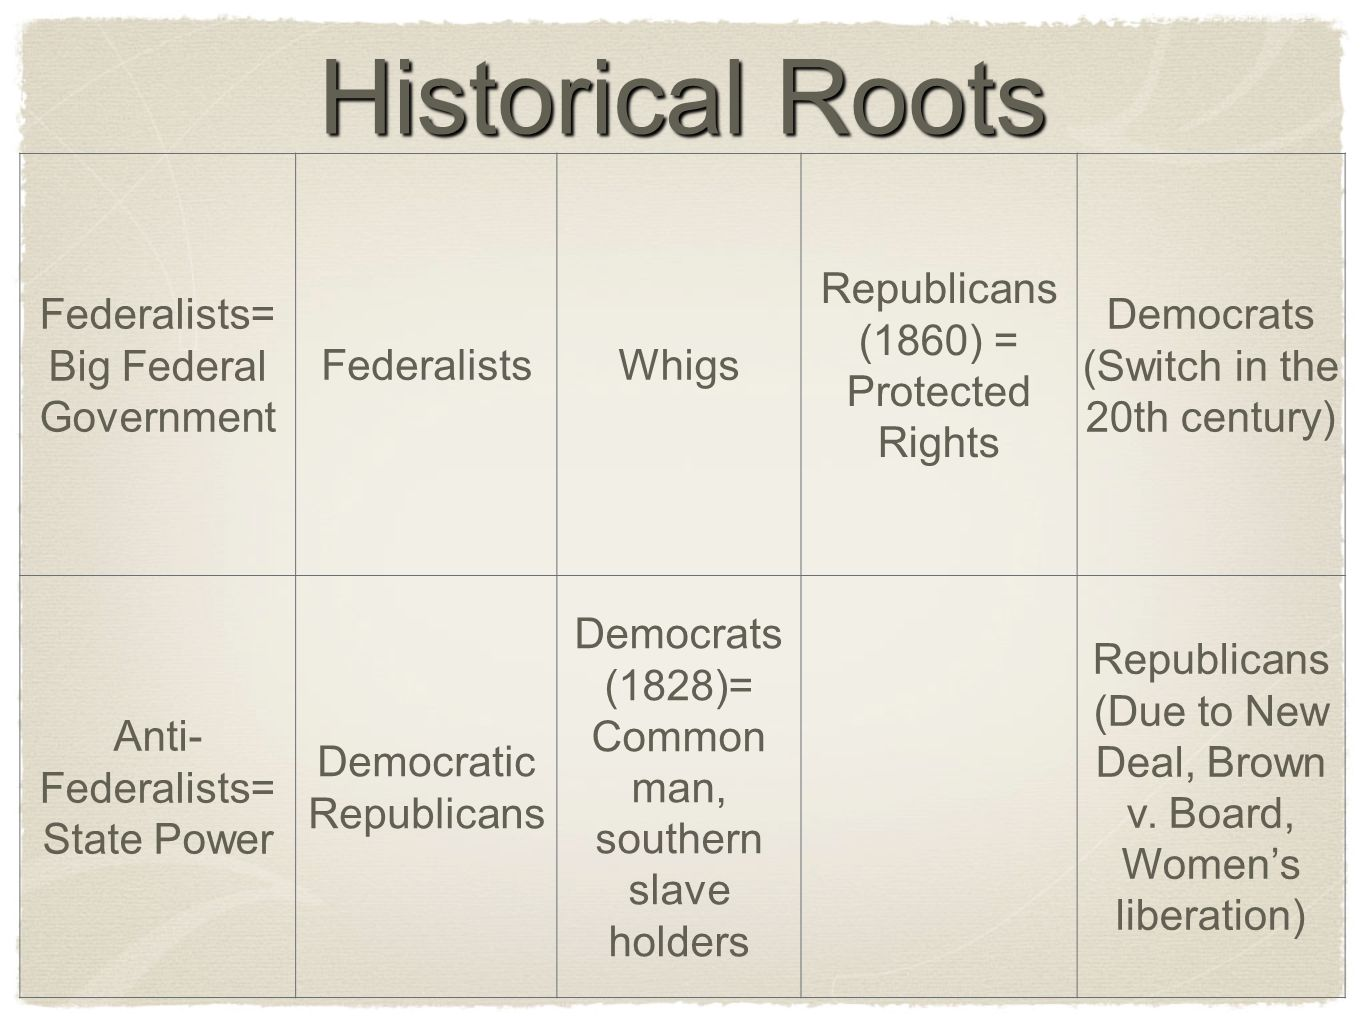 Historical Roots Federalists= Big Federal Government FederalistsWhigs Republicans (1860) = Protected Rights Democrats (Switch in the 20th century) Anti- Federalists= State Power Democratic Republicans Democrats (1828)= Common man, southern slave holders Republicans (Due to New Deal, Brown v.